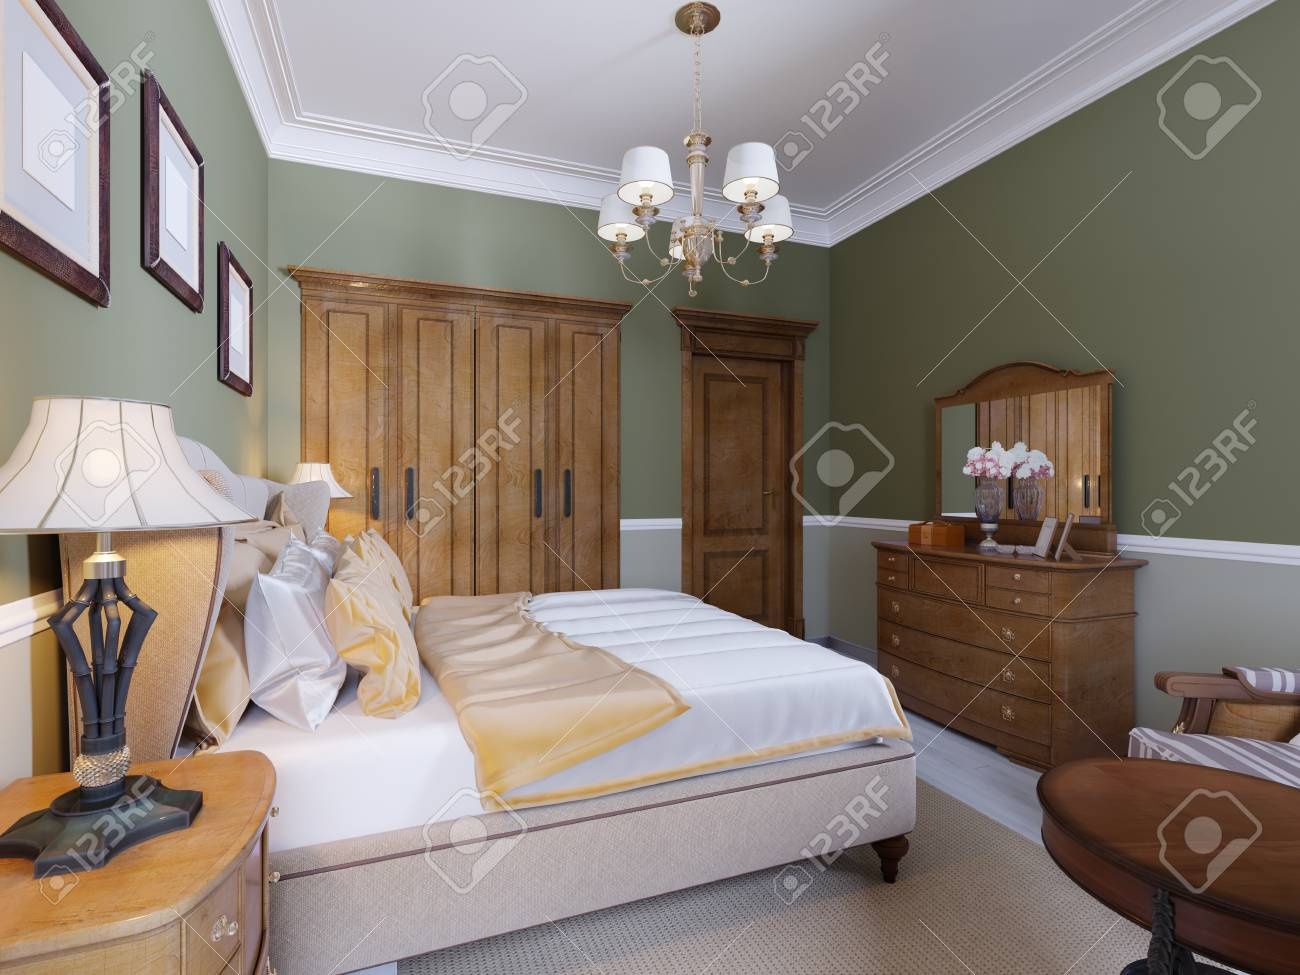 English Style Bedroom With A Large Soft Fabric Bed Bedside Tables Stock Photo Picture And Royalty Free Image Image 113380856